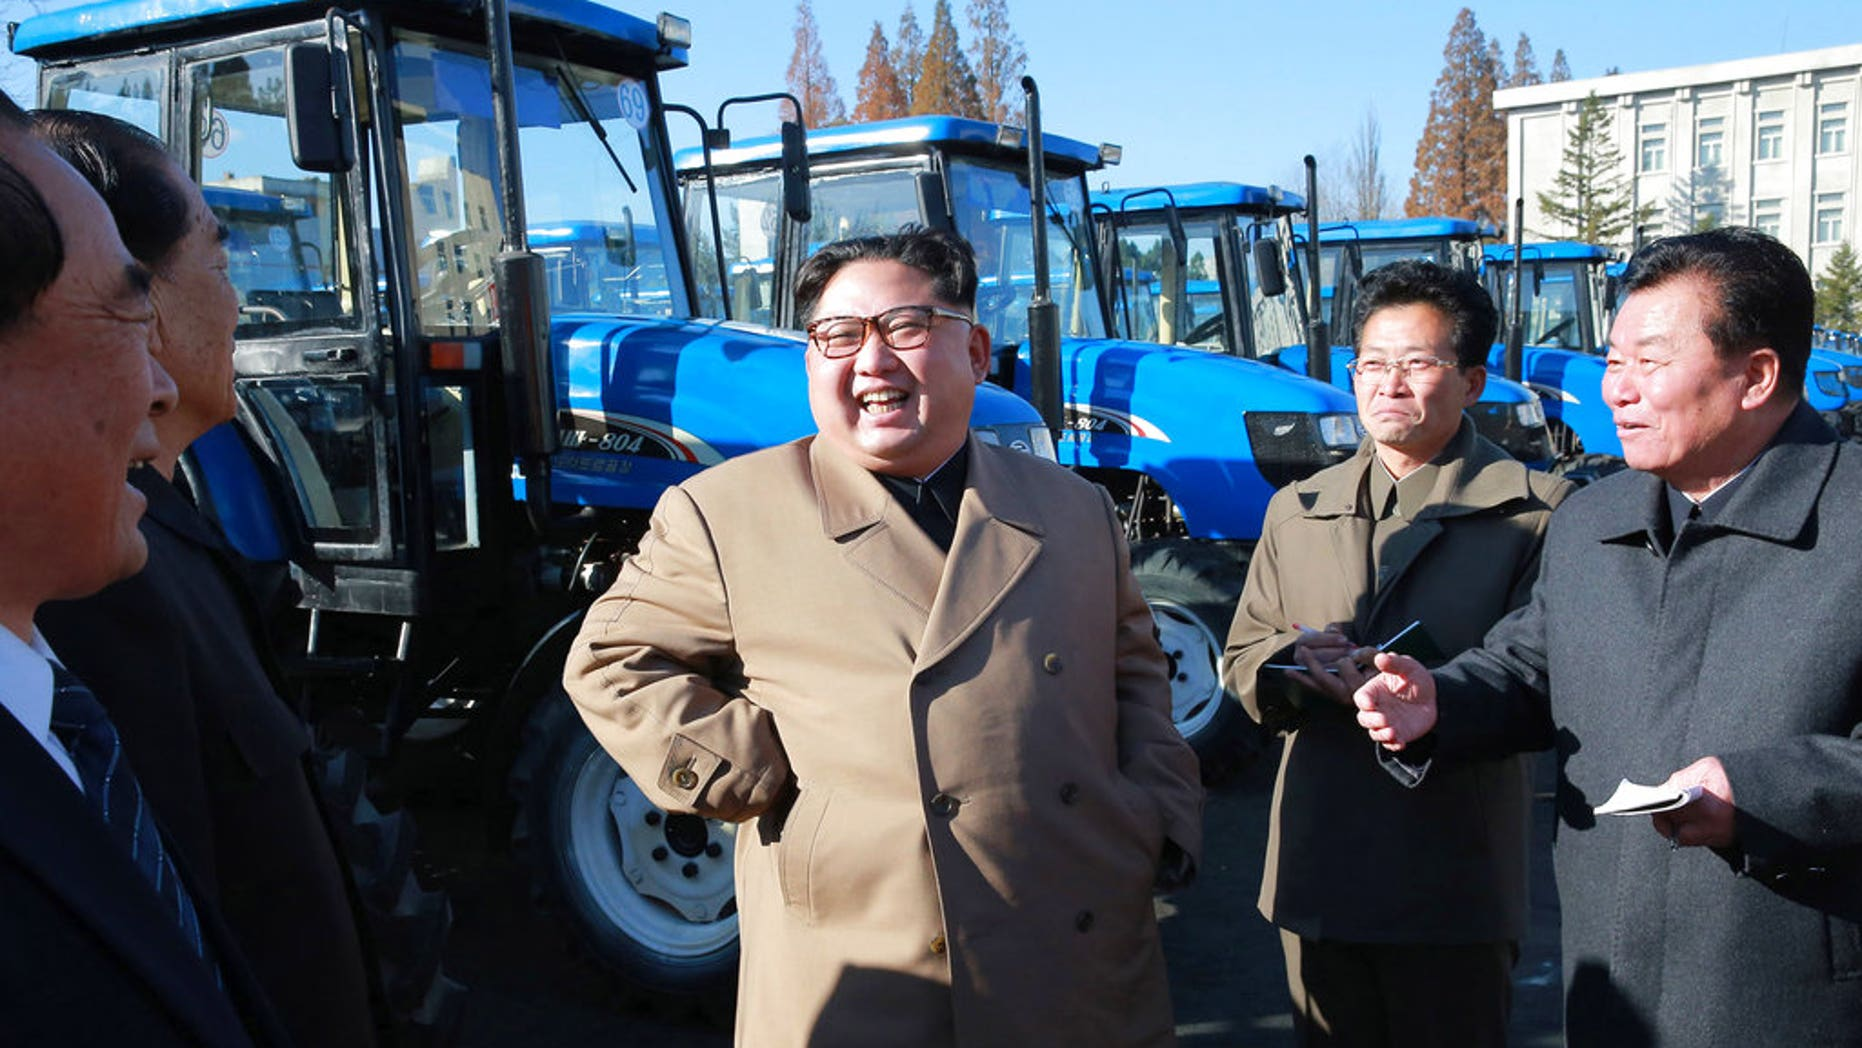 North Korean leader Kim Jong Un has reportedly banned his citizens from participating in events with drinking, singing or other entertainment.